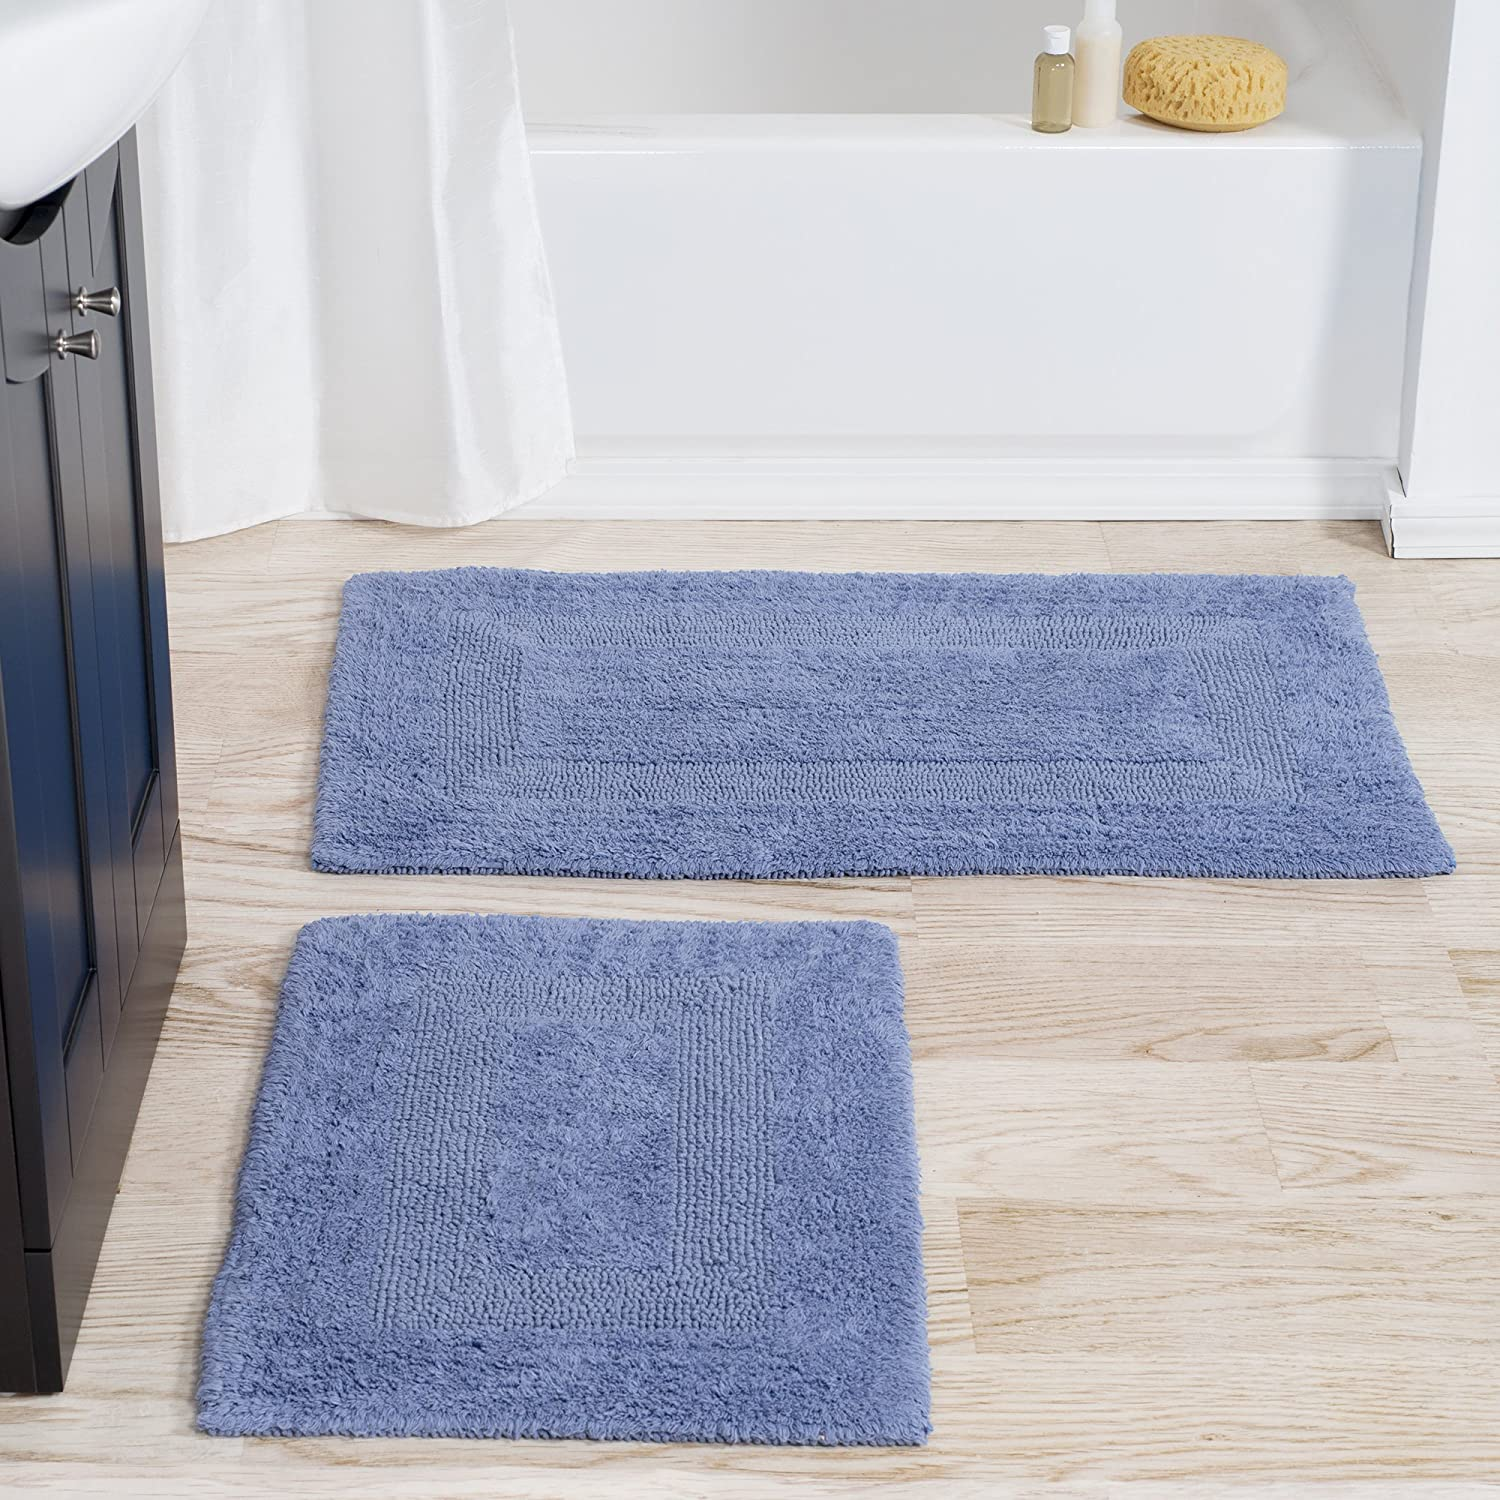 Cotton Bath Mat Set- 2 Piece 100 Percent Cotton Mats- Reversible, Soft, Absorbent and Machine Washable Bathroom Rugs By Lavish Home (Blue)